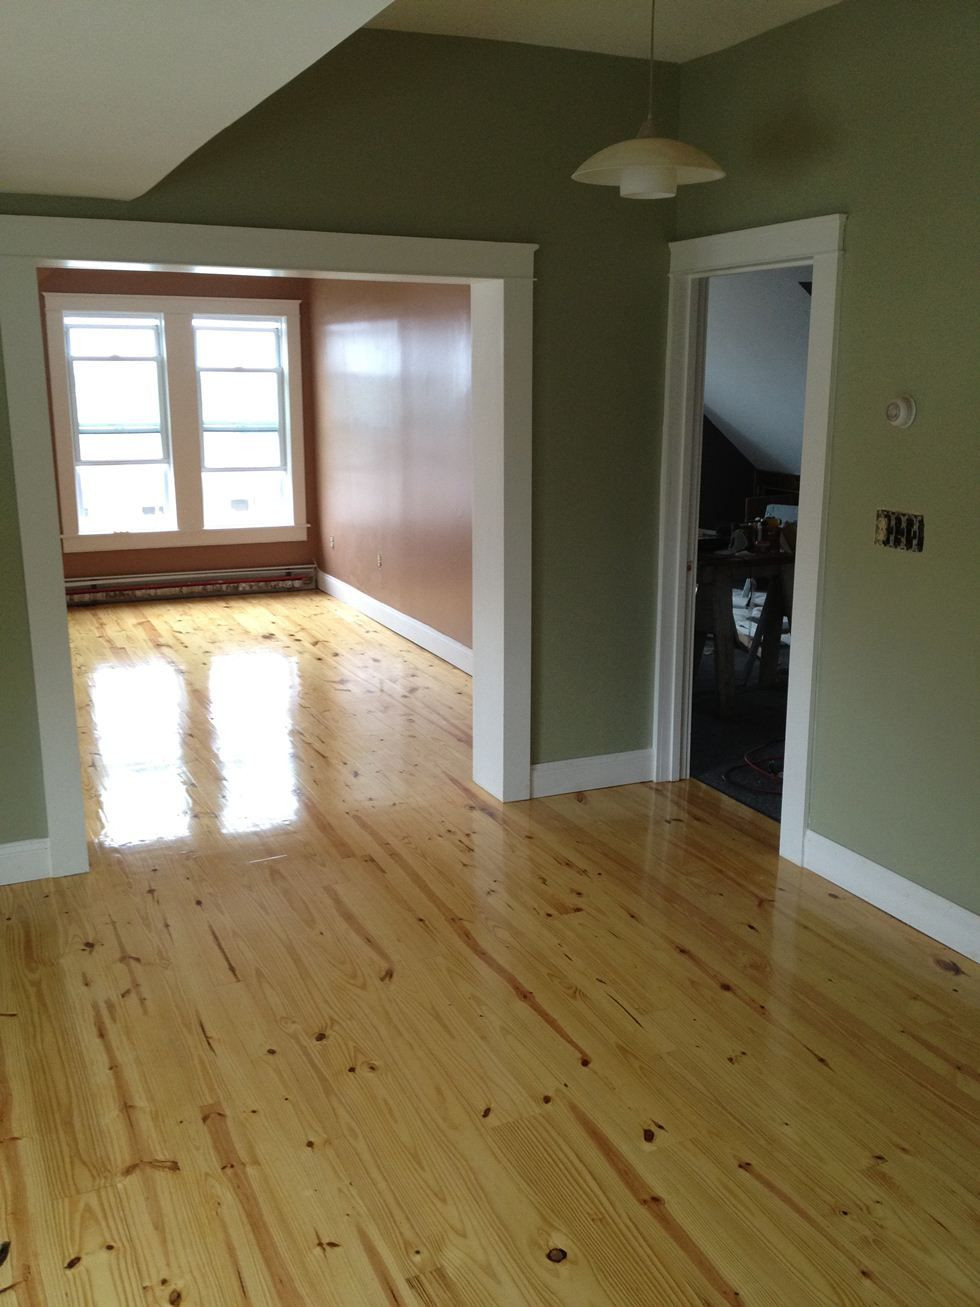 Old Country Hardwood Flooring Calgary Of Beautiful Classic Knots Make This Random Width Wide Plank Yellow with Beautiful Classic Knots Make This Random Width Wide Plank Yellow Pine A Definite Talking Point Flooring Homes Pinefloors